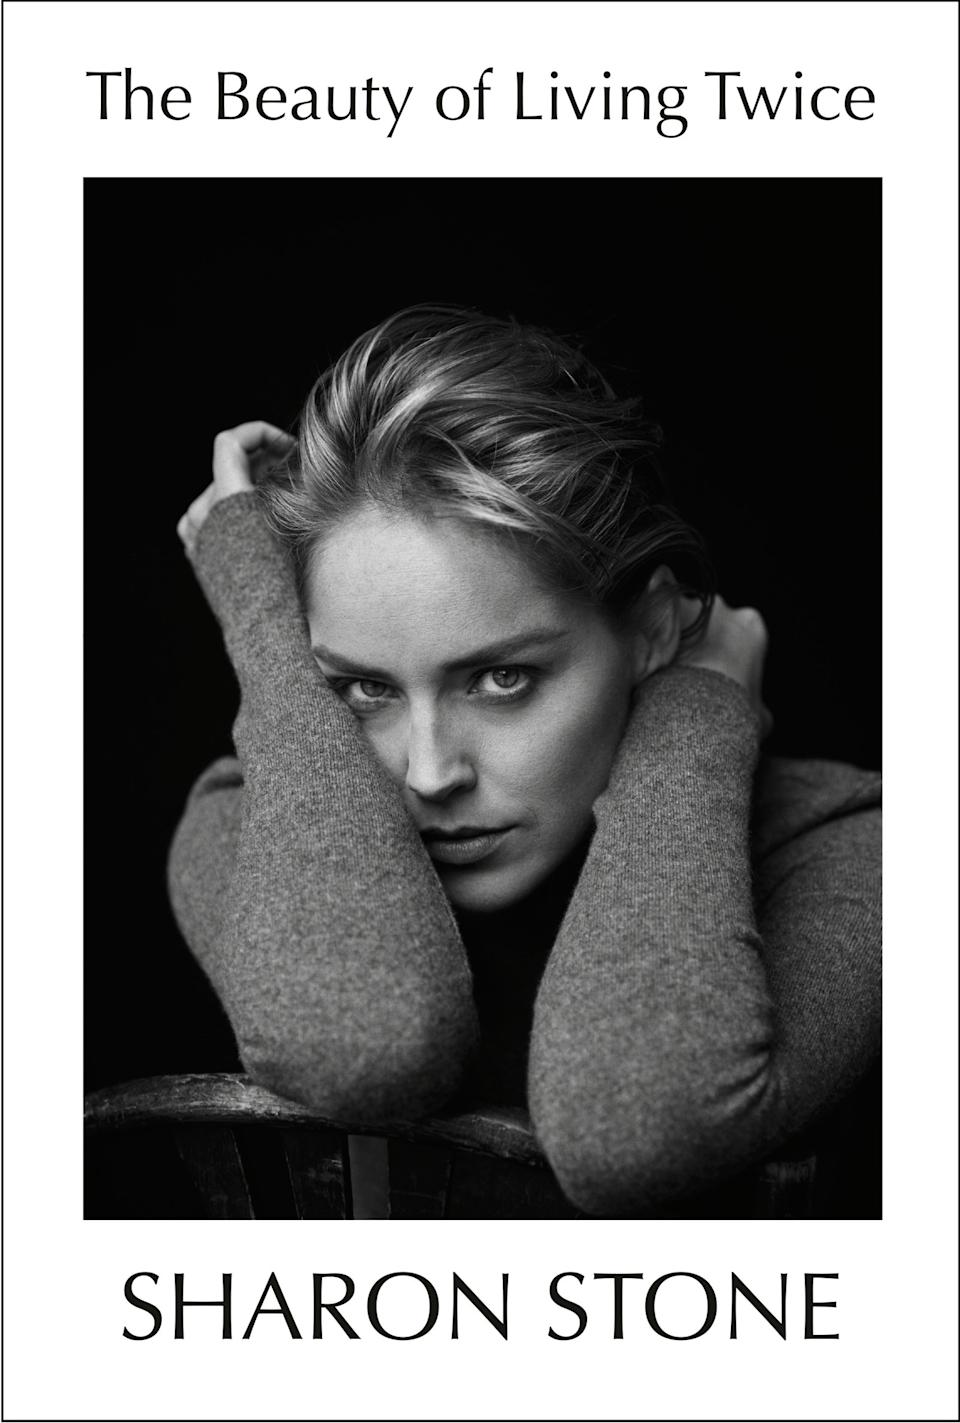 The Beauty of Living Twice, Sharon Stone's new memoir, is out on March. 30. (Photo: Knopf Doubleday)